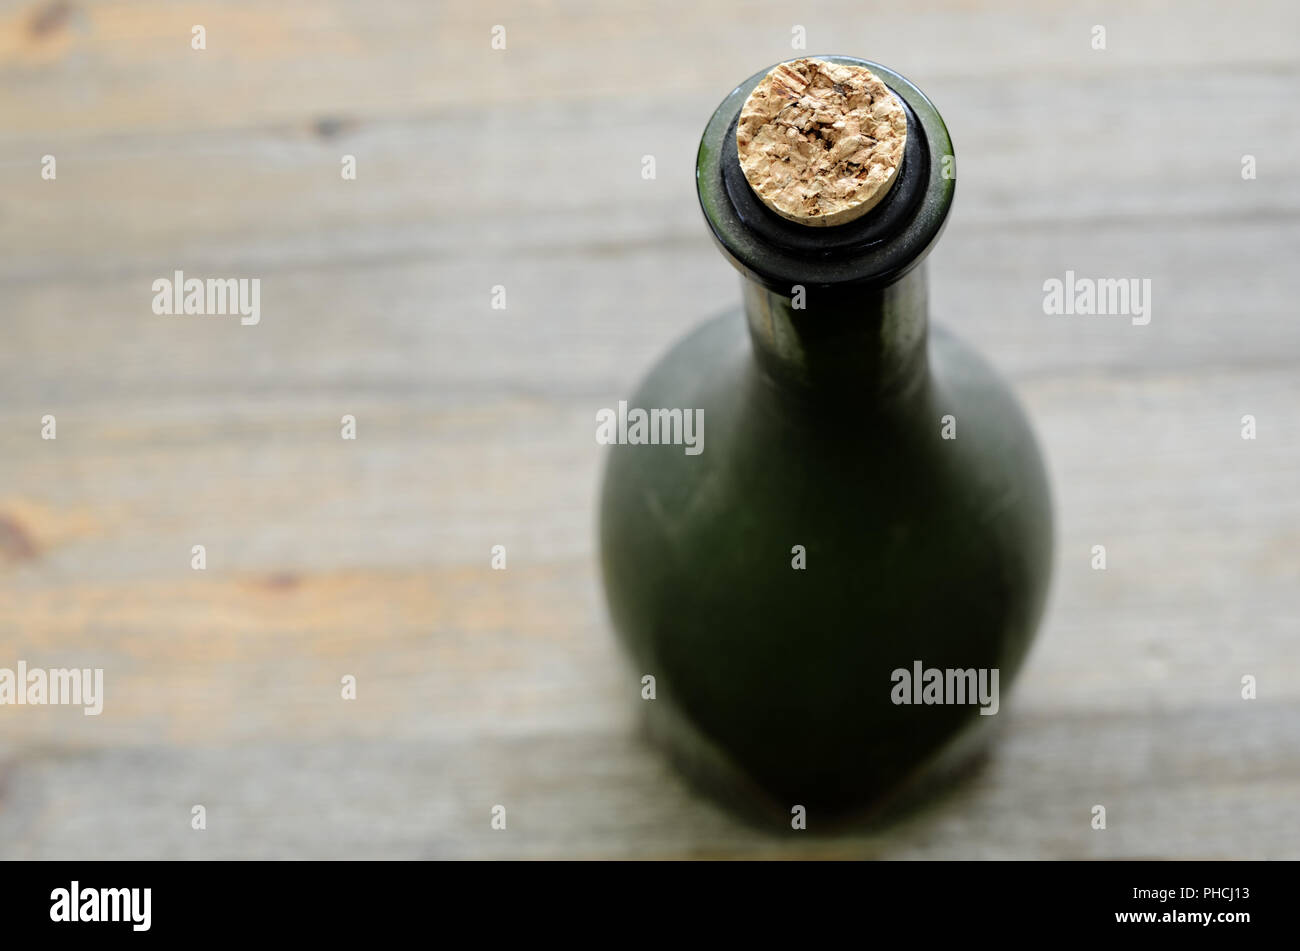 a green bottleneck, top view - Stock Image